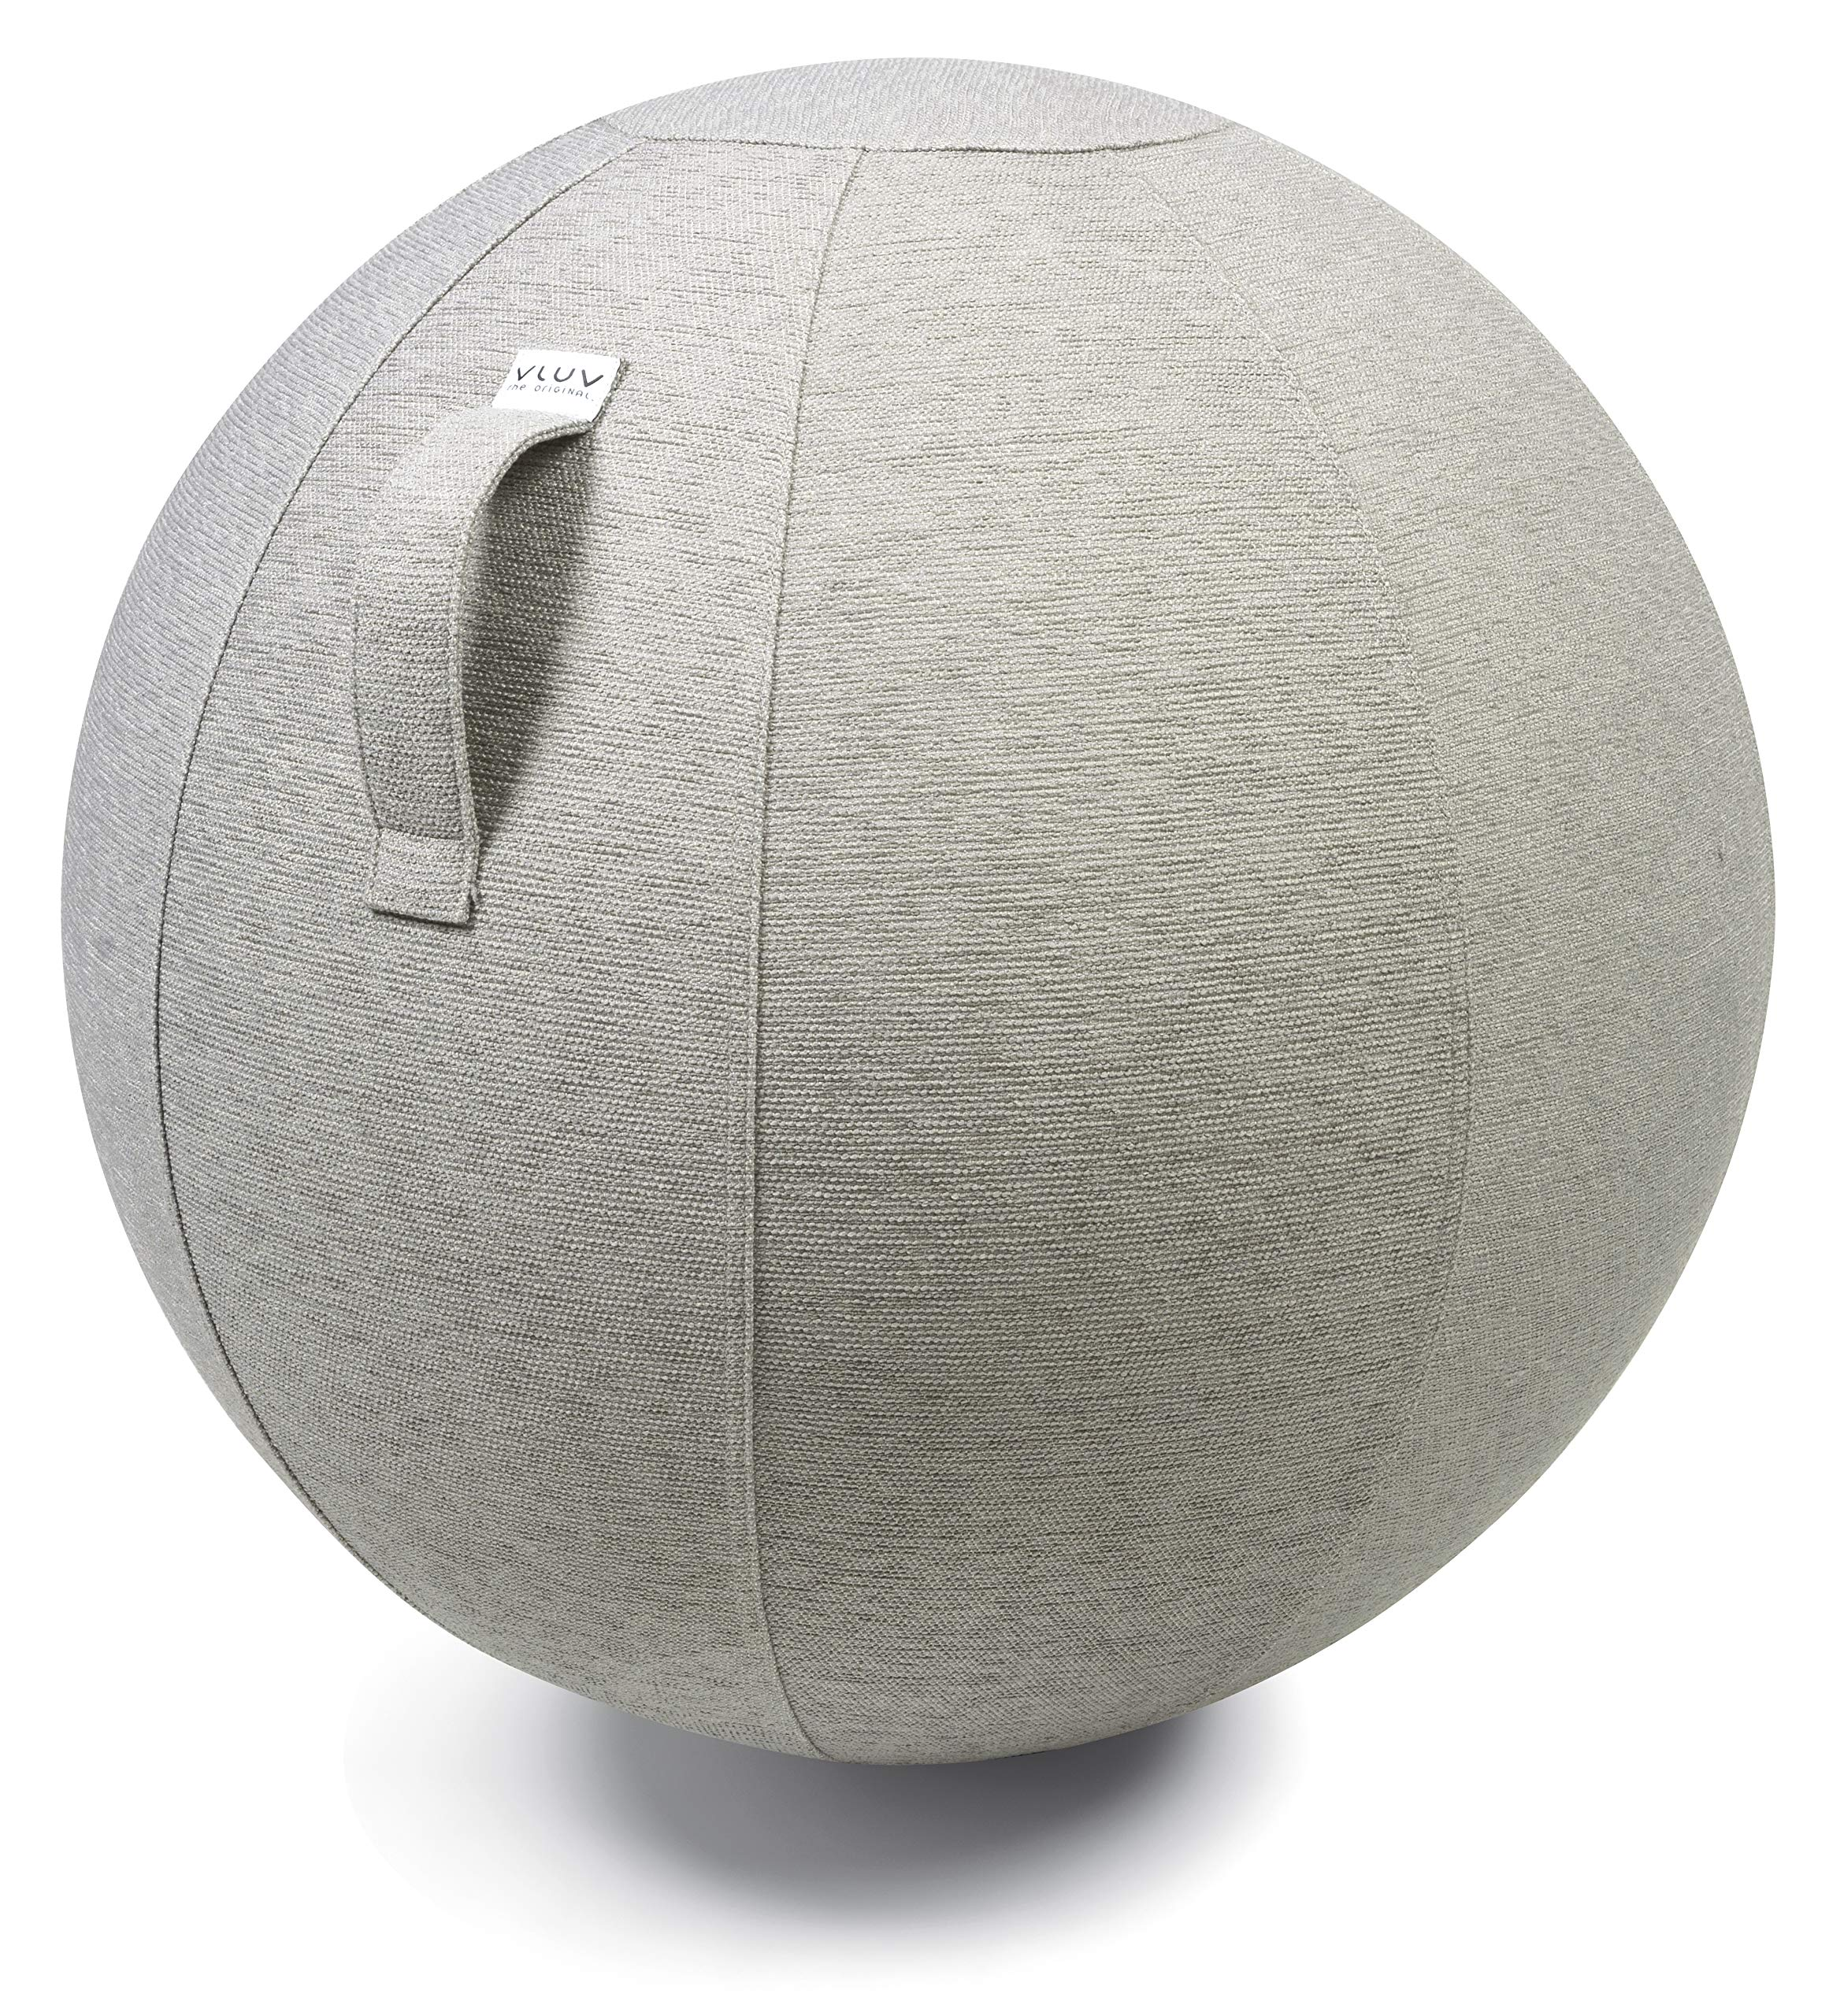 VLUV STOV Premium Quality Self-Standing Sitting Ball with Handle - Home or Office Chair and Exercise Ball for Yoga, Back Stretching, or Gym- Upholstery Fabric Stability Ball (Concrete, 29.5'')